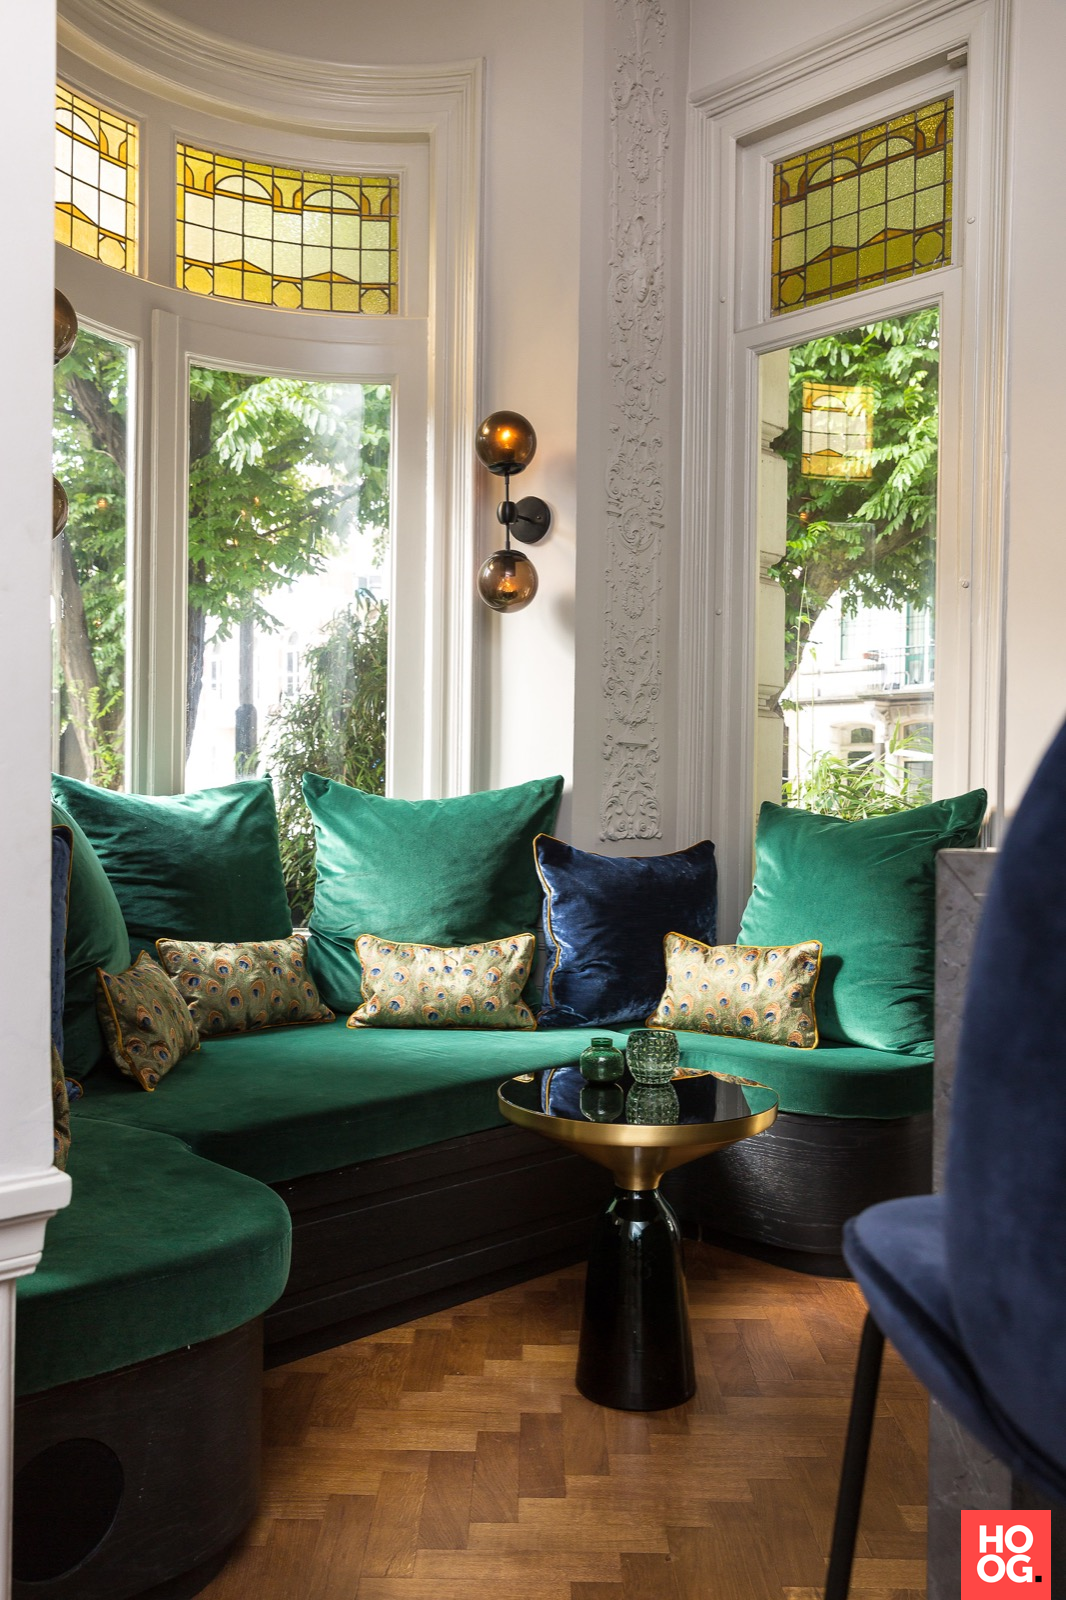 Uncommon Objects And Unexpected Materials Surrounded By Royal Blue Deep Green And Gold Rich In 2020 Gold Living Room Decor Studio Interior Blue And Gold Living Room #royal #blue #and #gold #living #room #ideas